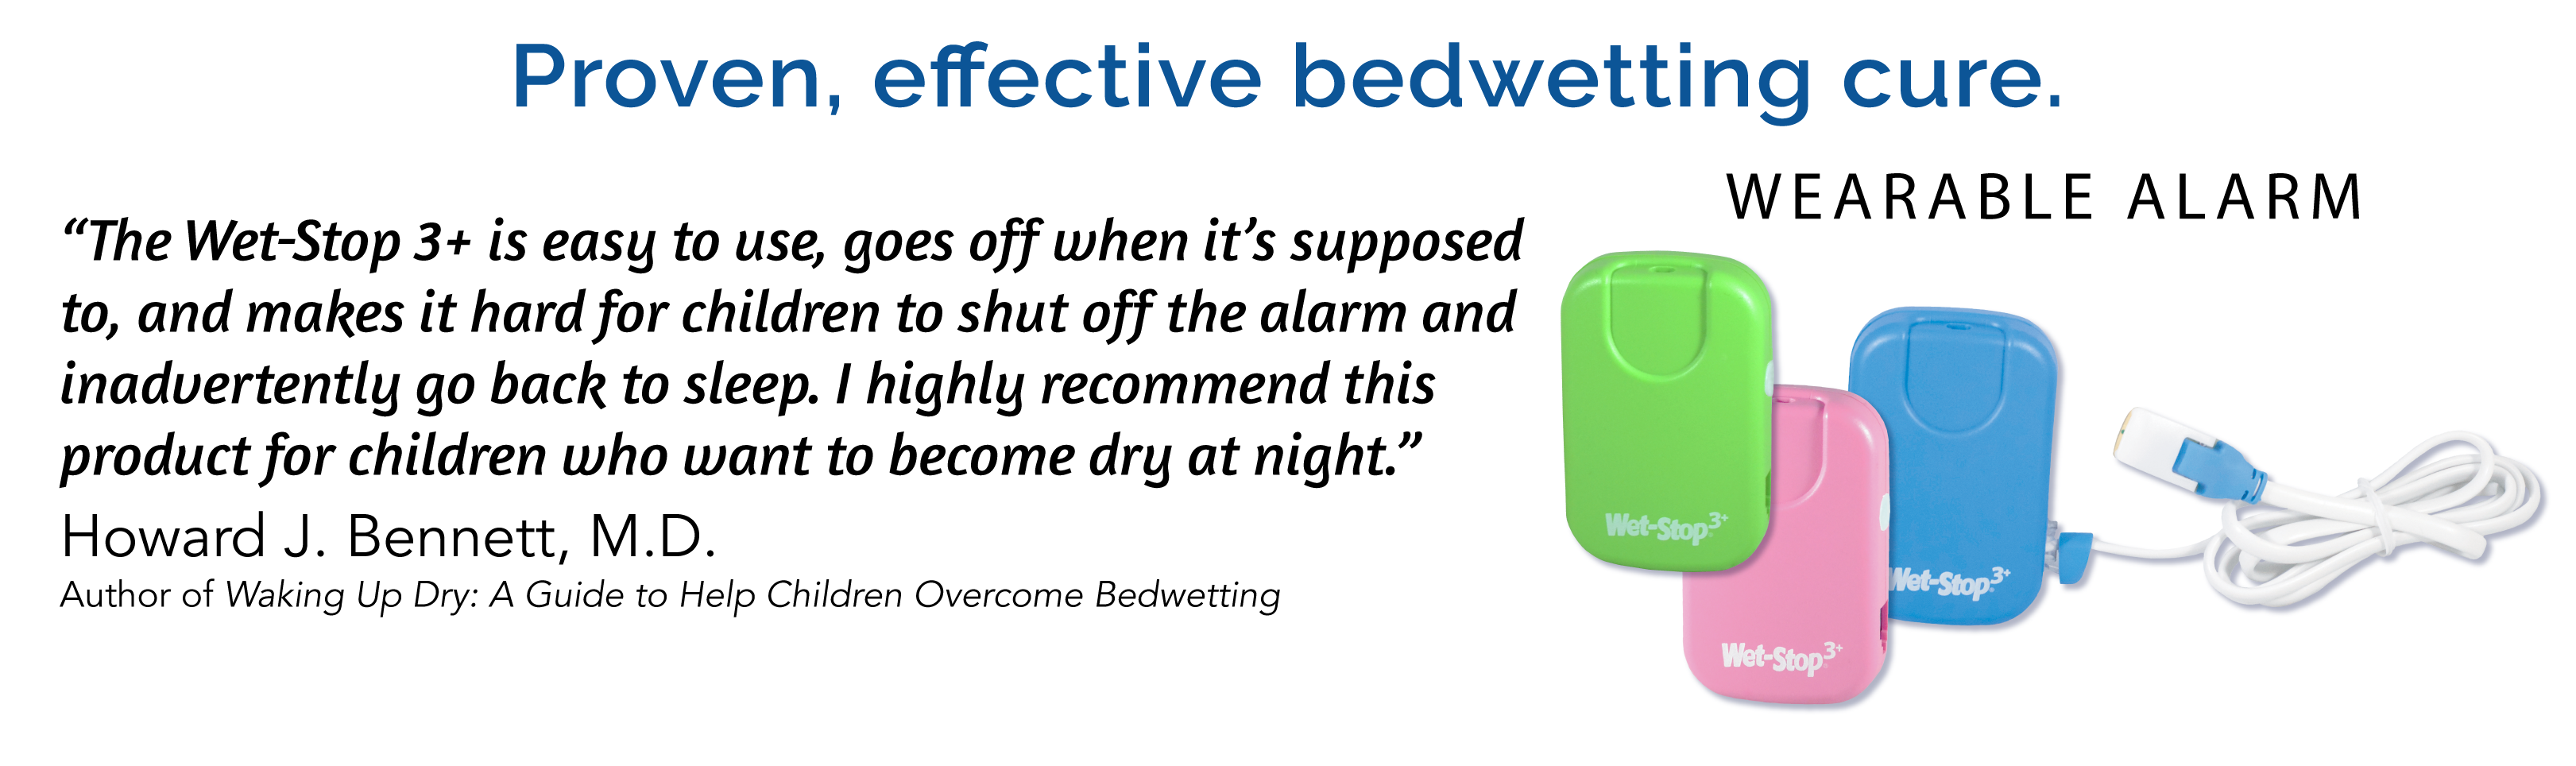 Wet-Stop 3+ is a proven, effective bedwetting cure. It is a wearable bedwetting alarm, recommended by doctors for children who want to become dry at night.